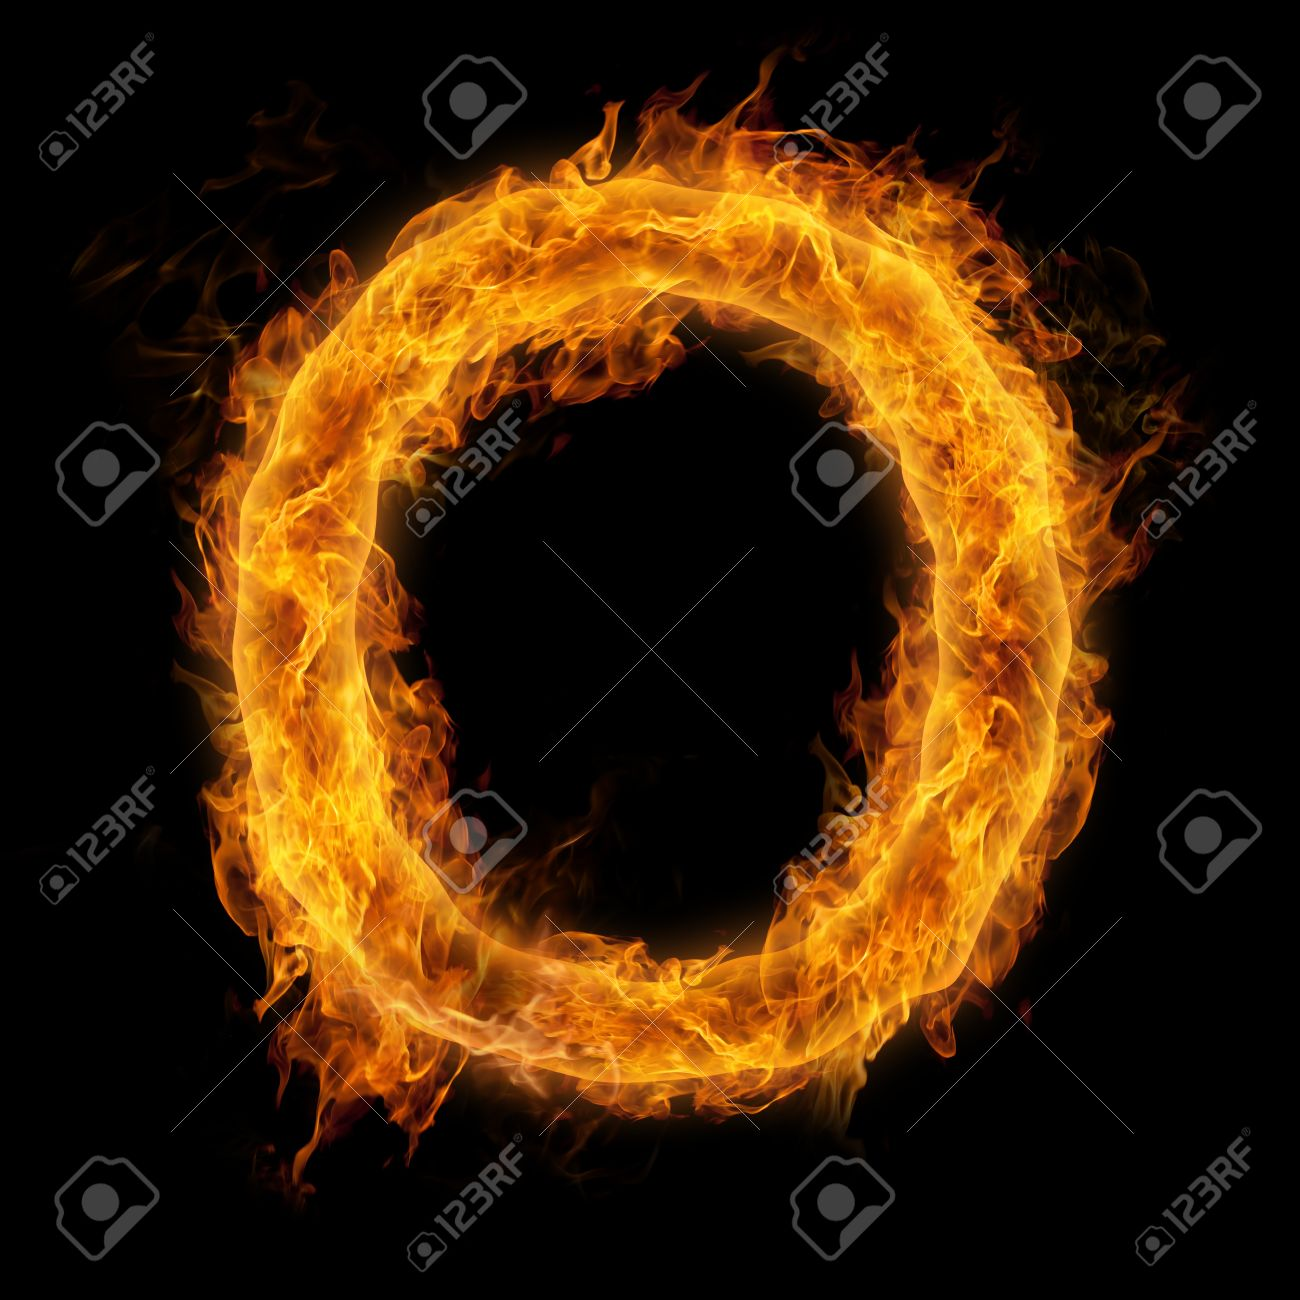 Fiery Uppercase Letter O Stock Photo Picture And Royalty Free Image